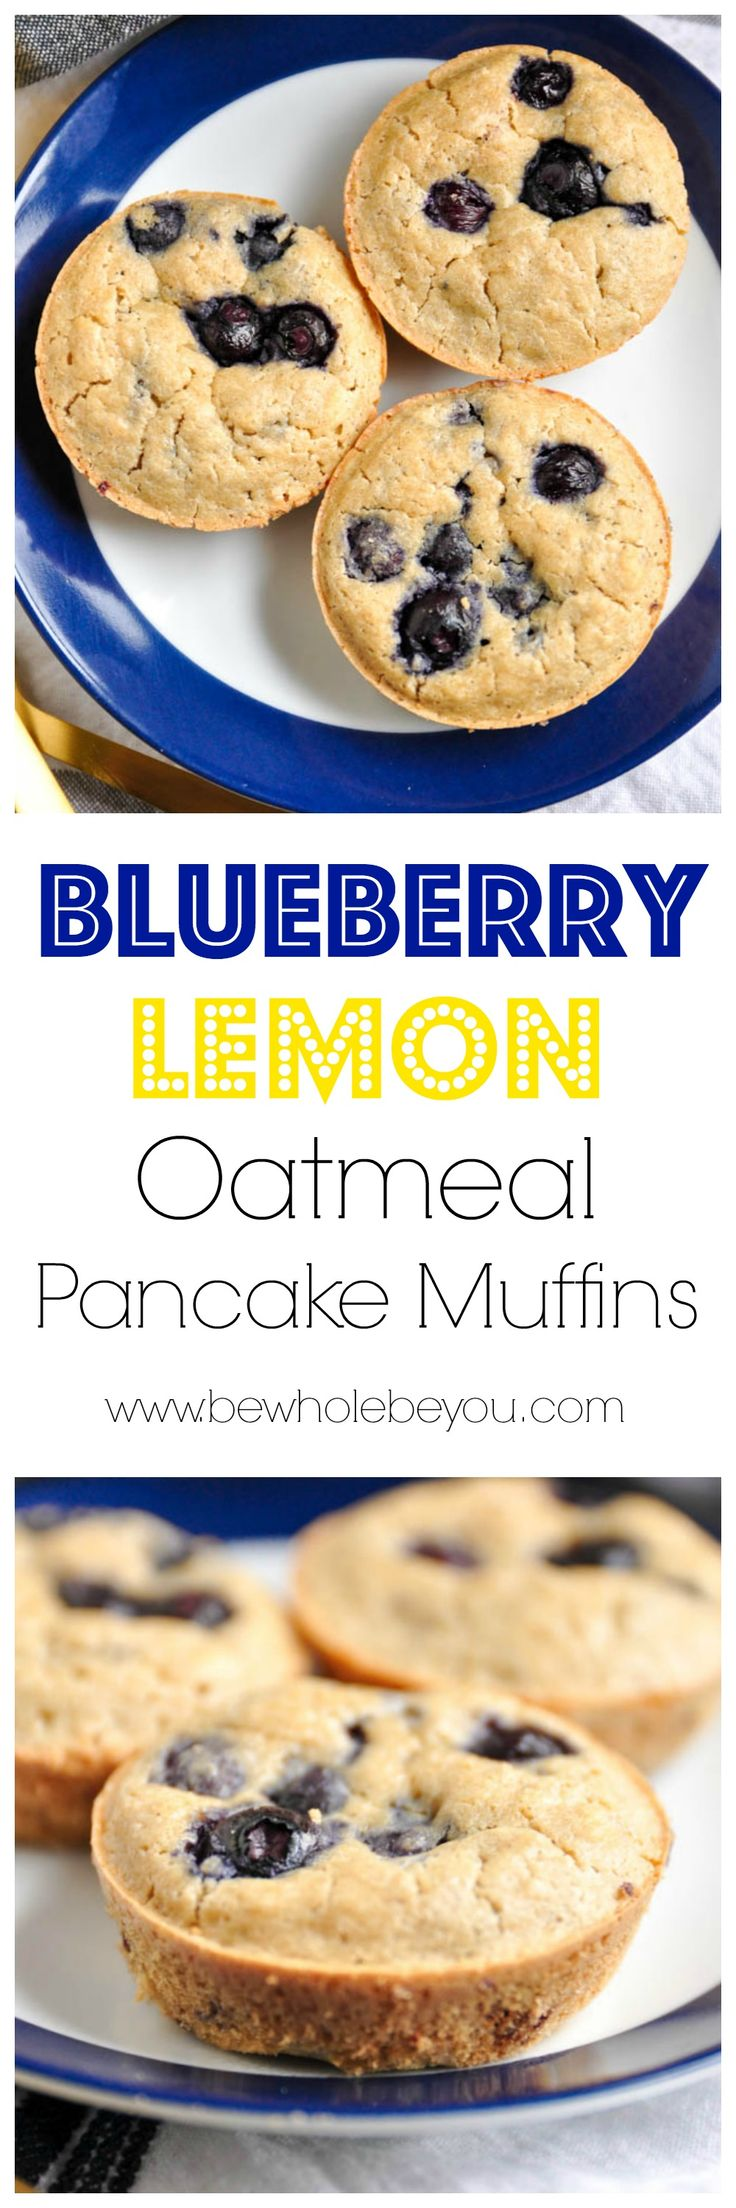 Blueberry Lemon Oatmeal Pancake Muffins. Be Whole. Be You.